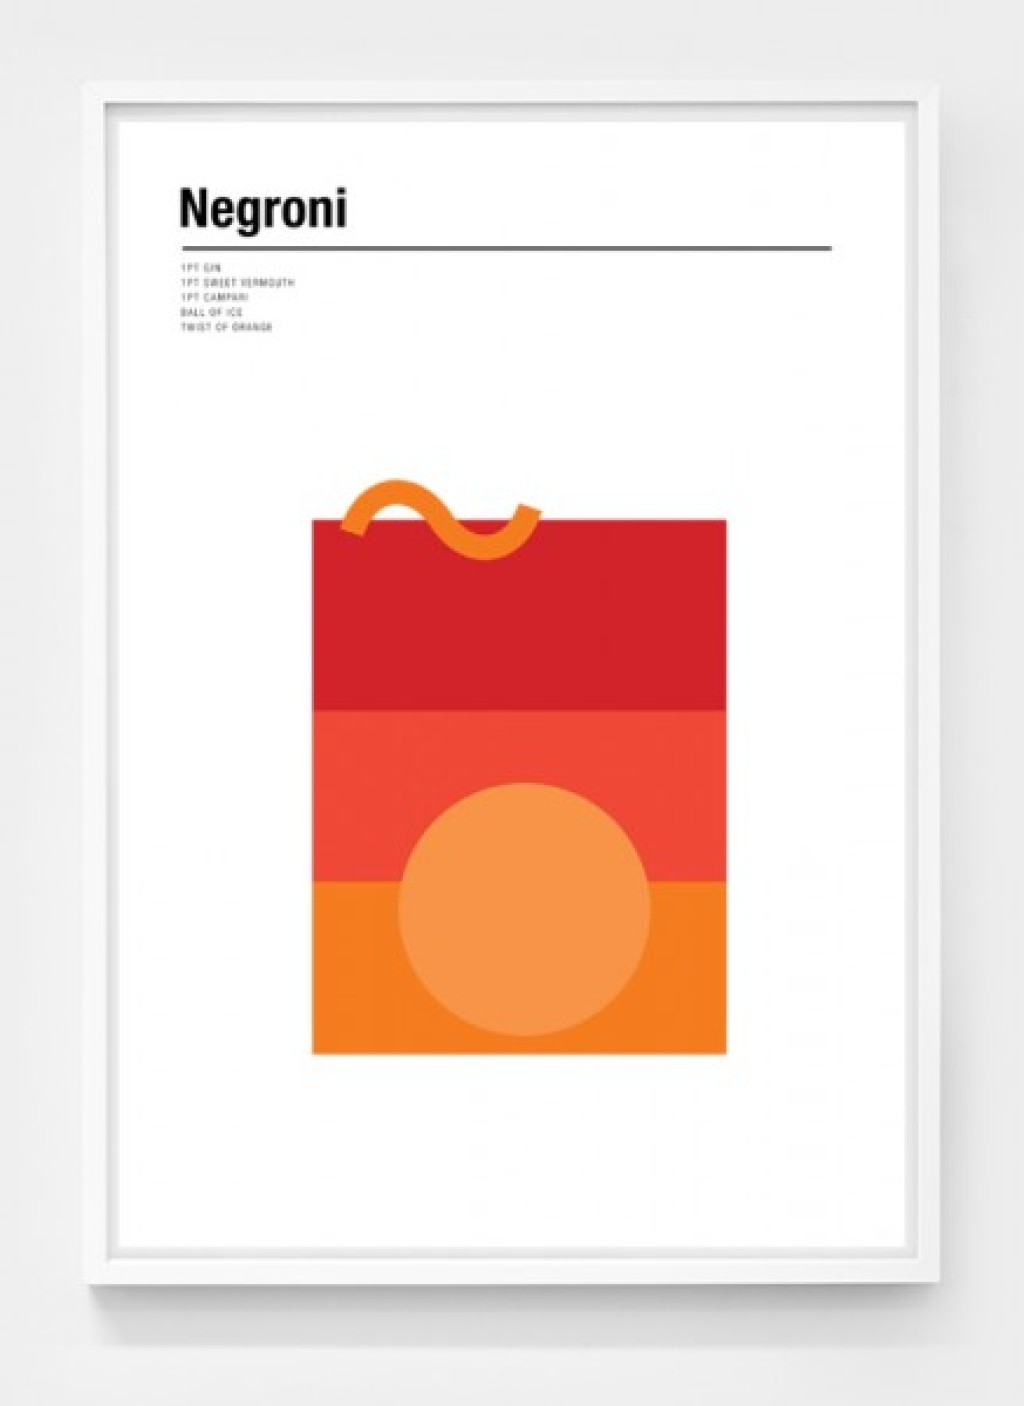 negroni-minimalist-cocktail-poster-by-nick-barclay-designs